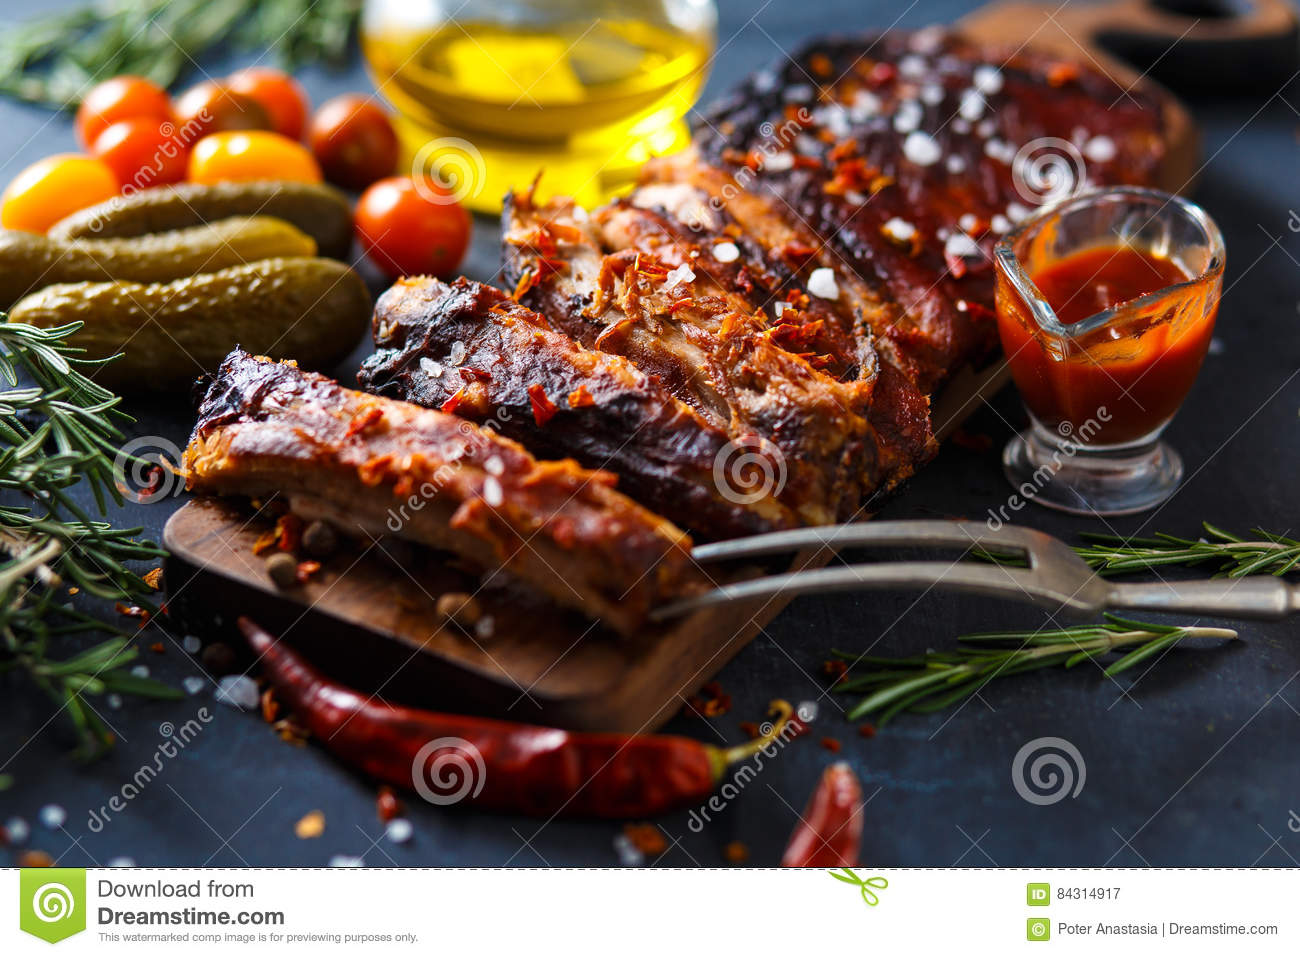 Delicious barbecued ribs seasoned with a spicy basting sauce and served with chopped